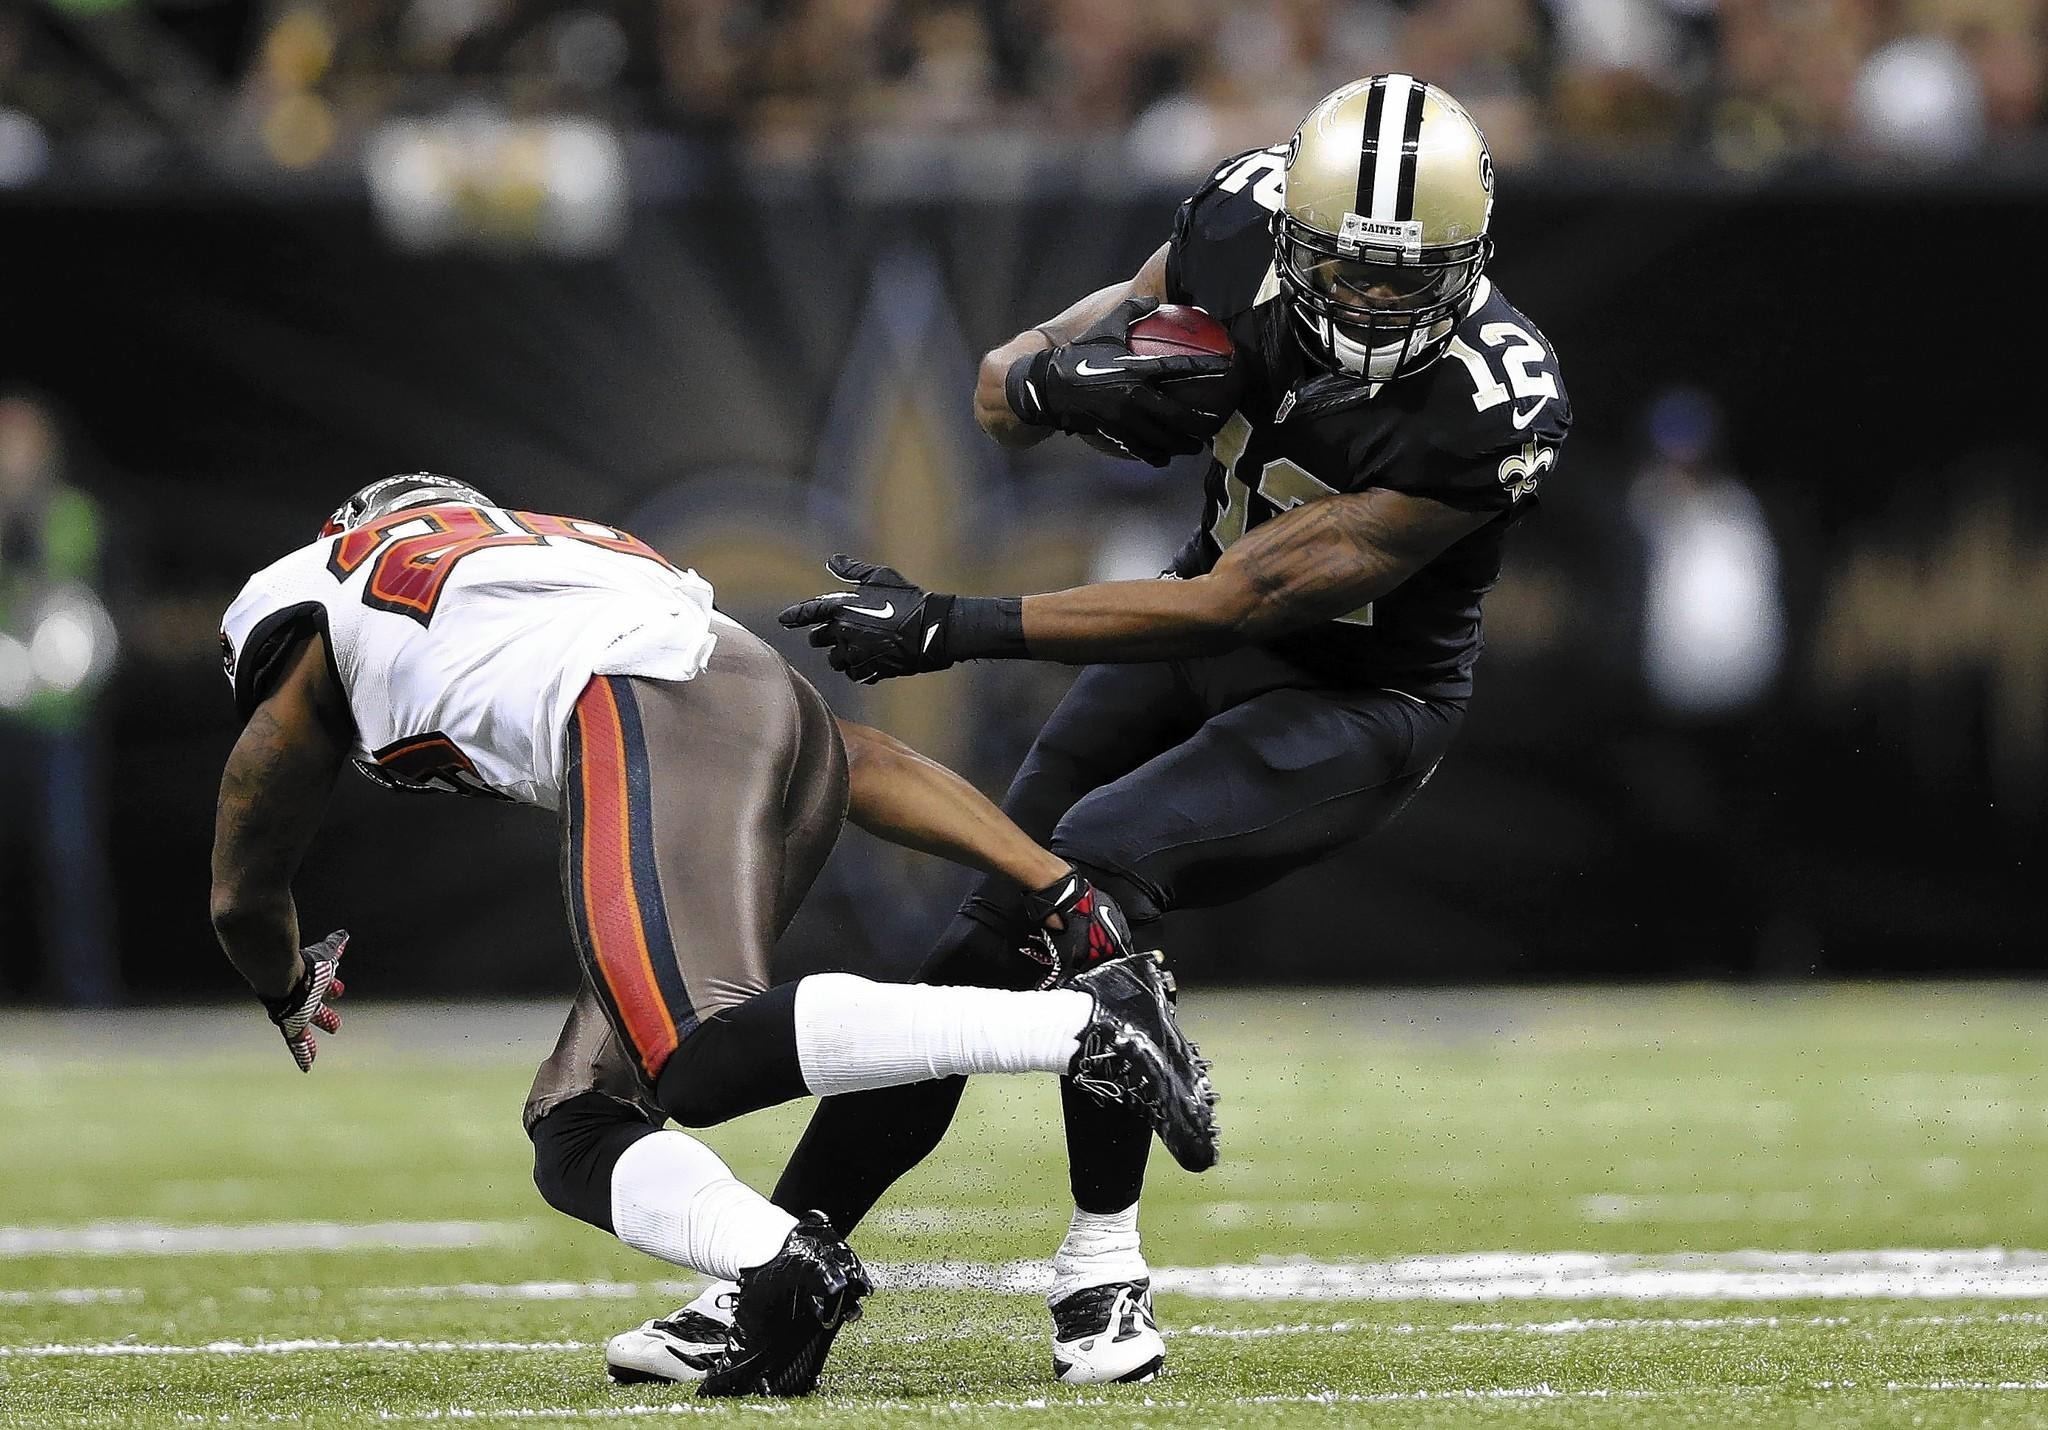 Dec 29, 2013; New Orleans, LA, USA; New Orleans Saints wide receiver Marques Colston (12) carries the ball past Tampa Bay Buccaneers defensive back Rashaan Melvin (28) in the first half at the Mercedes-Benz Superdome.